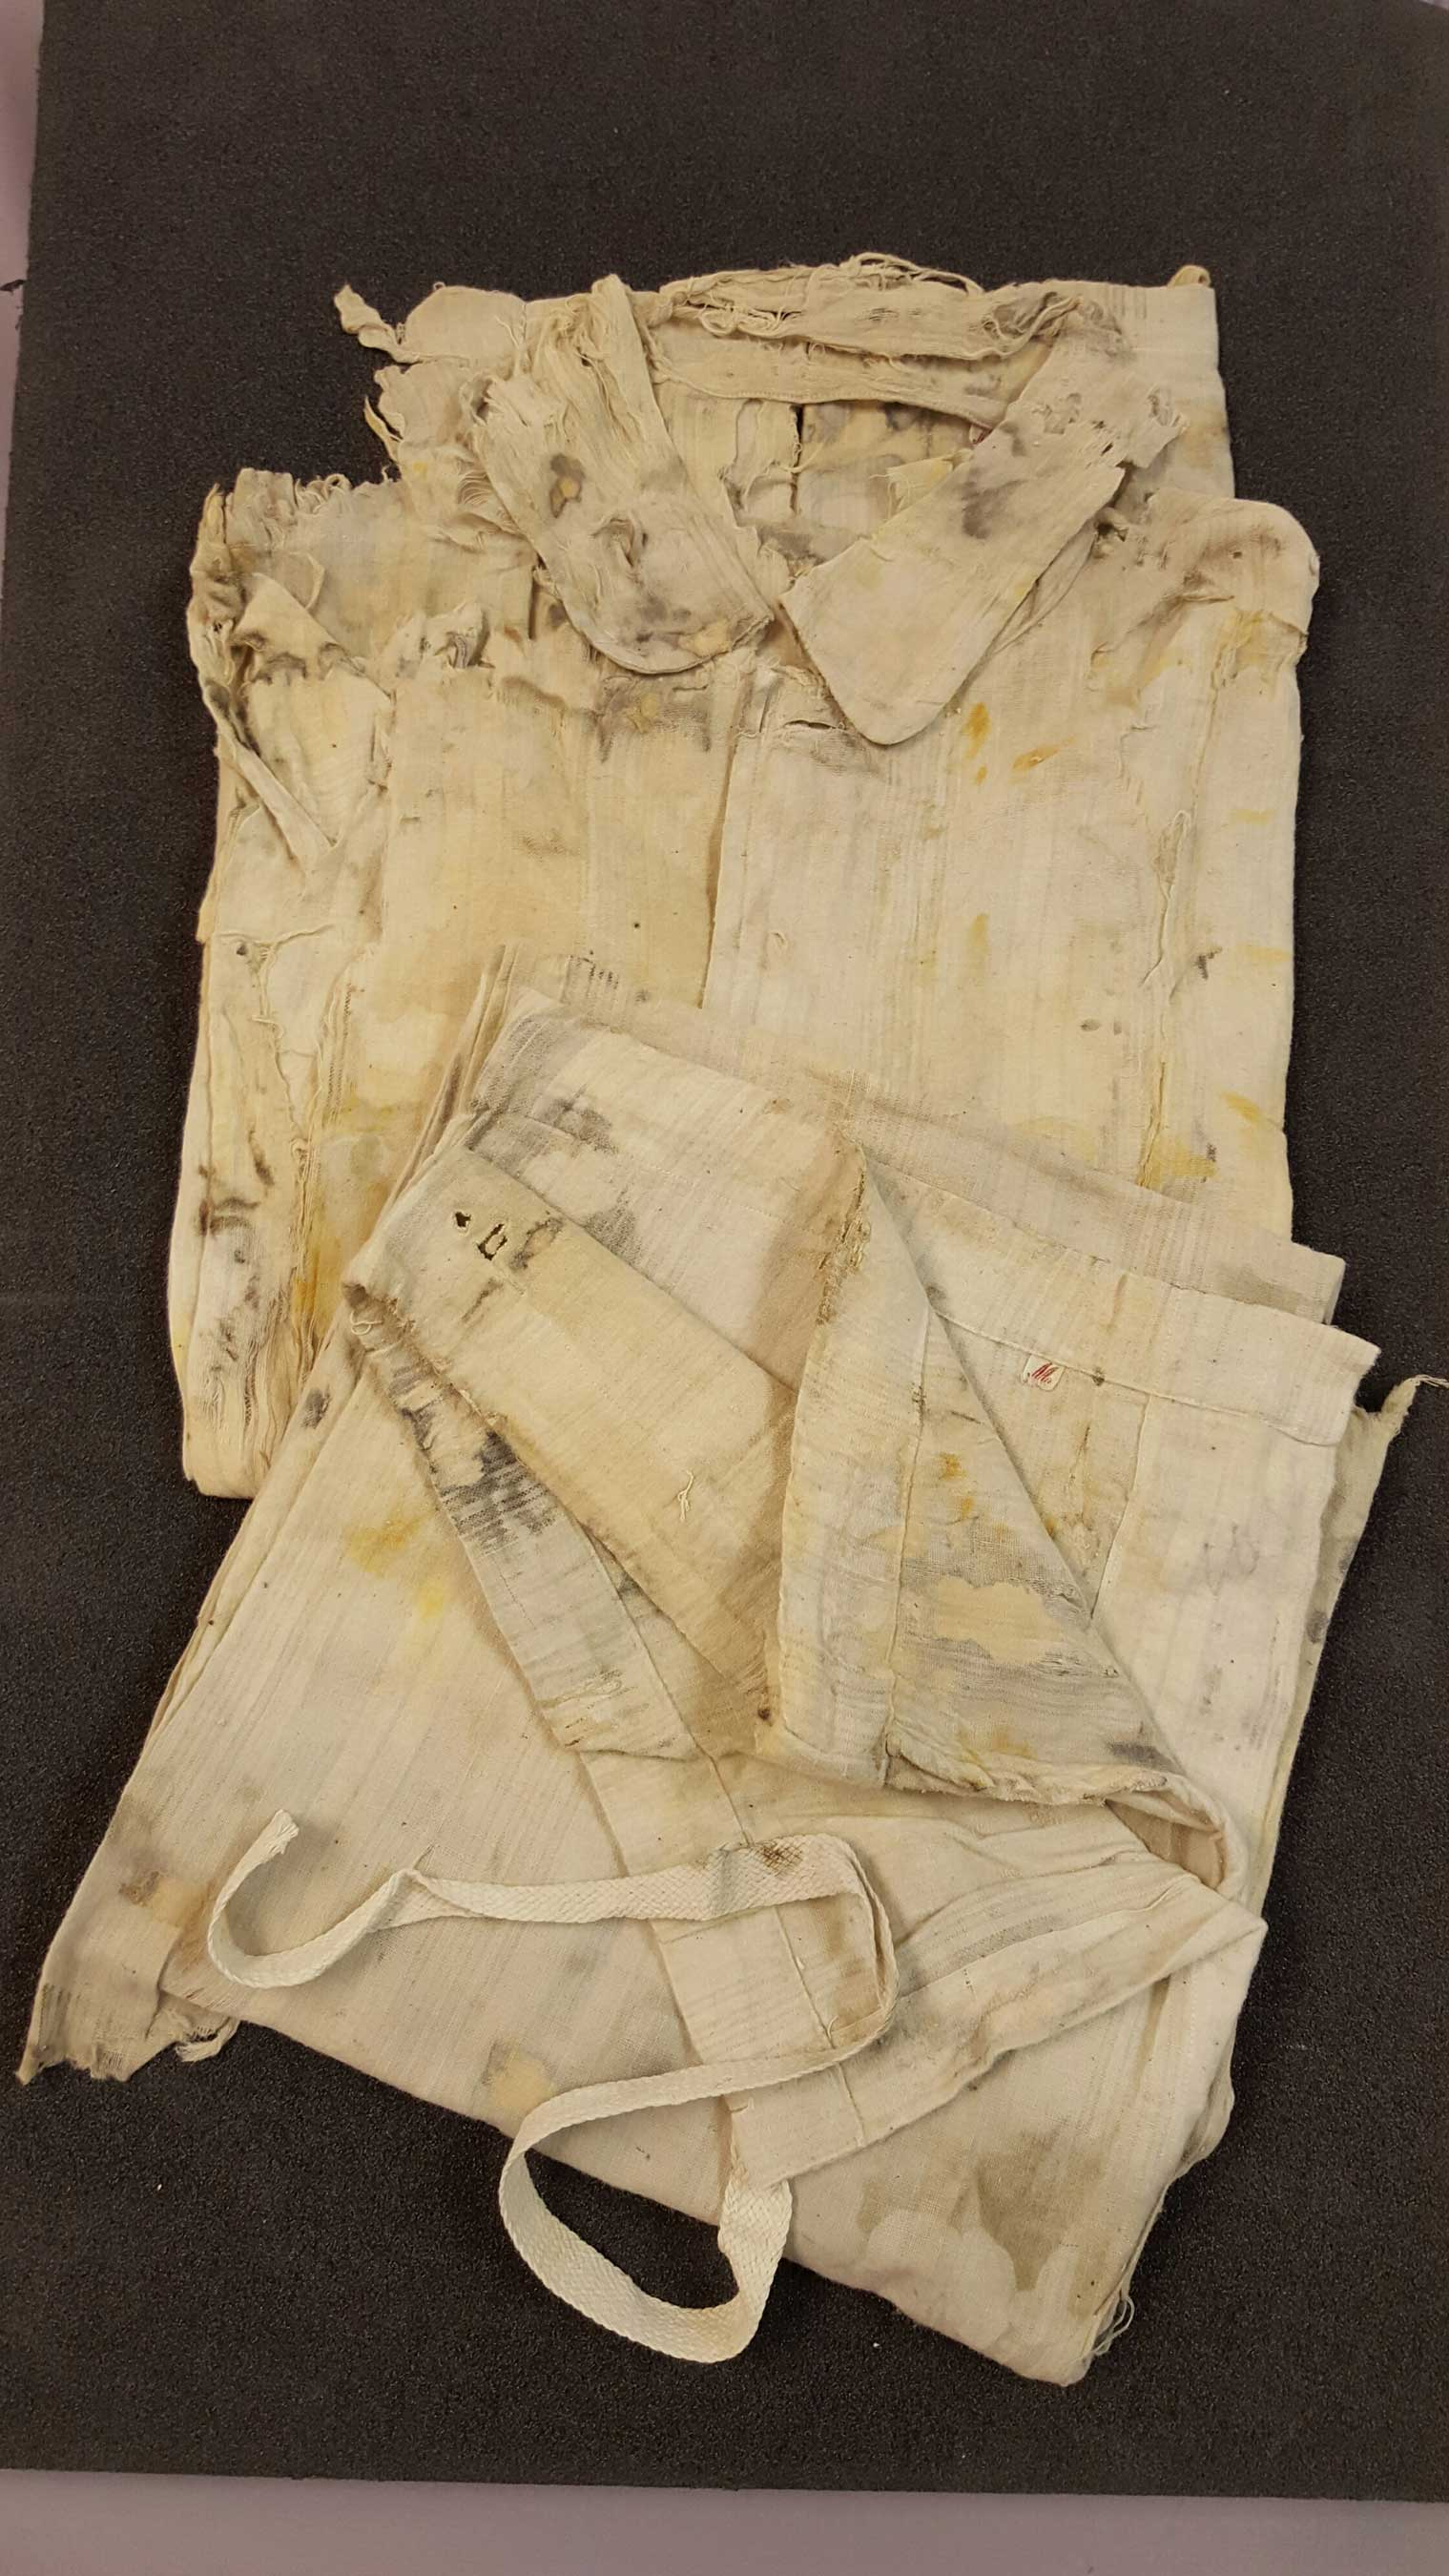 This pair of men's pajamas is made of white cotton with blue stripes. No maker marks were found, they are a size medium with button shirt and drawstring bottoms. (Credit Premier Exhibitions)